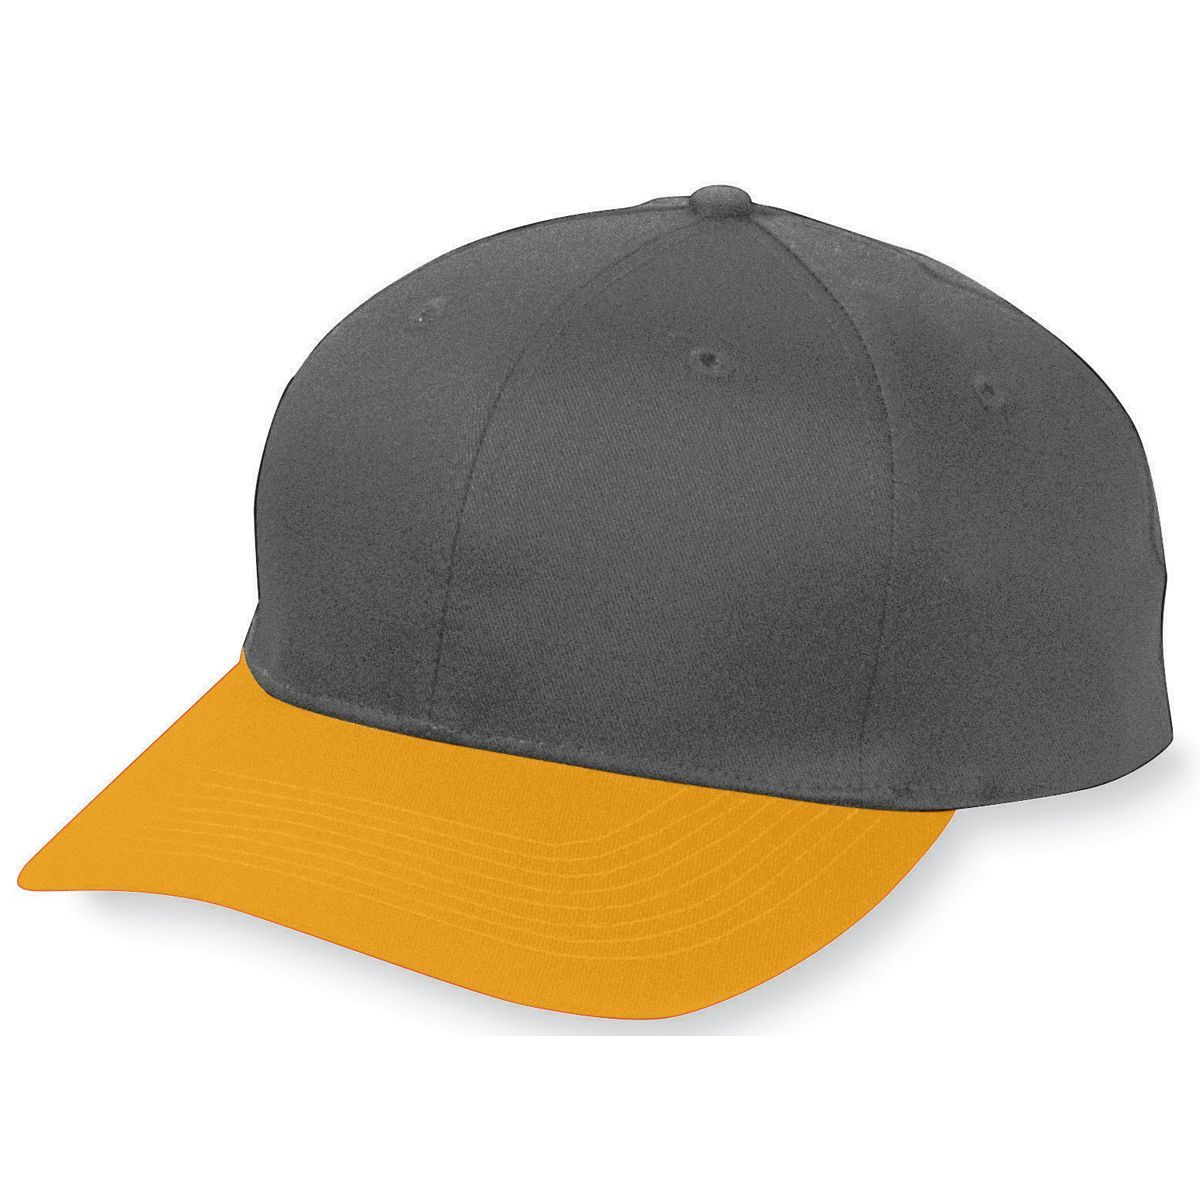 Six-Panel Cotton Twill Low-Profile Cap - BLACK/GOLD